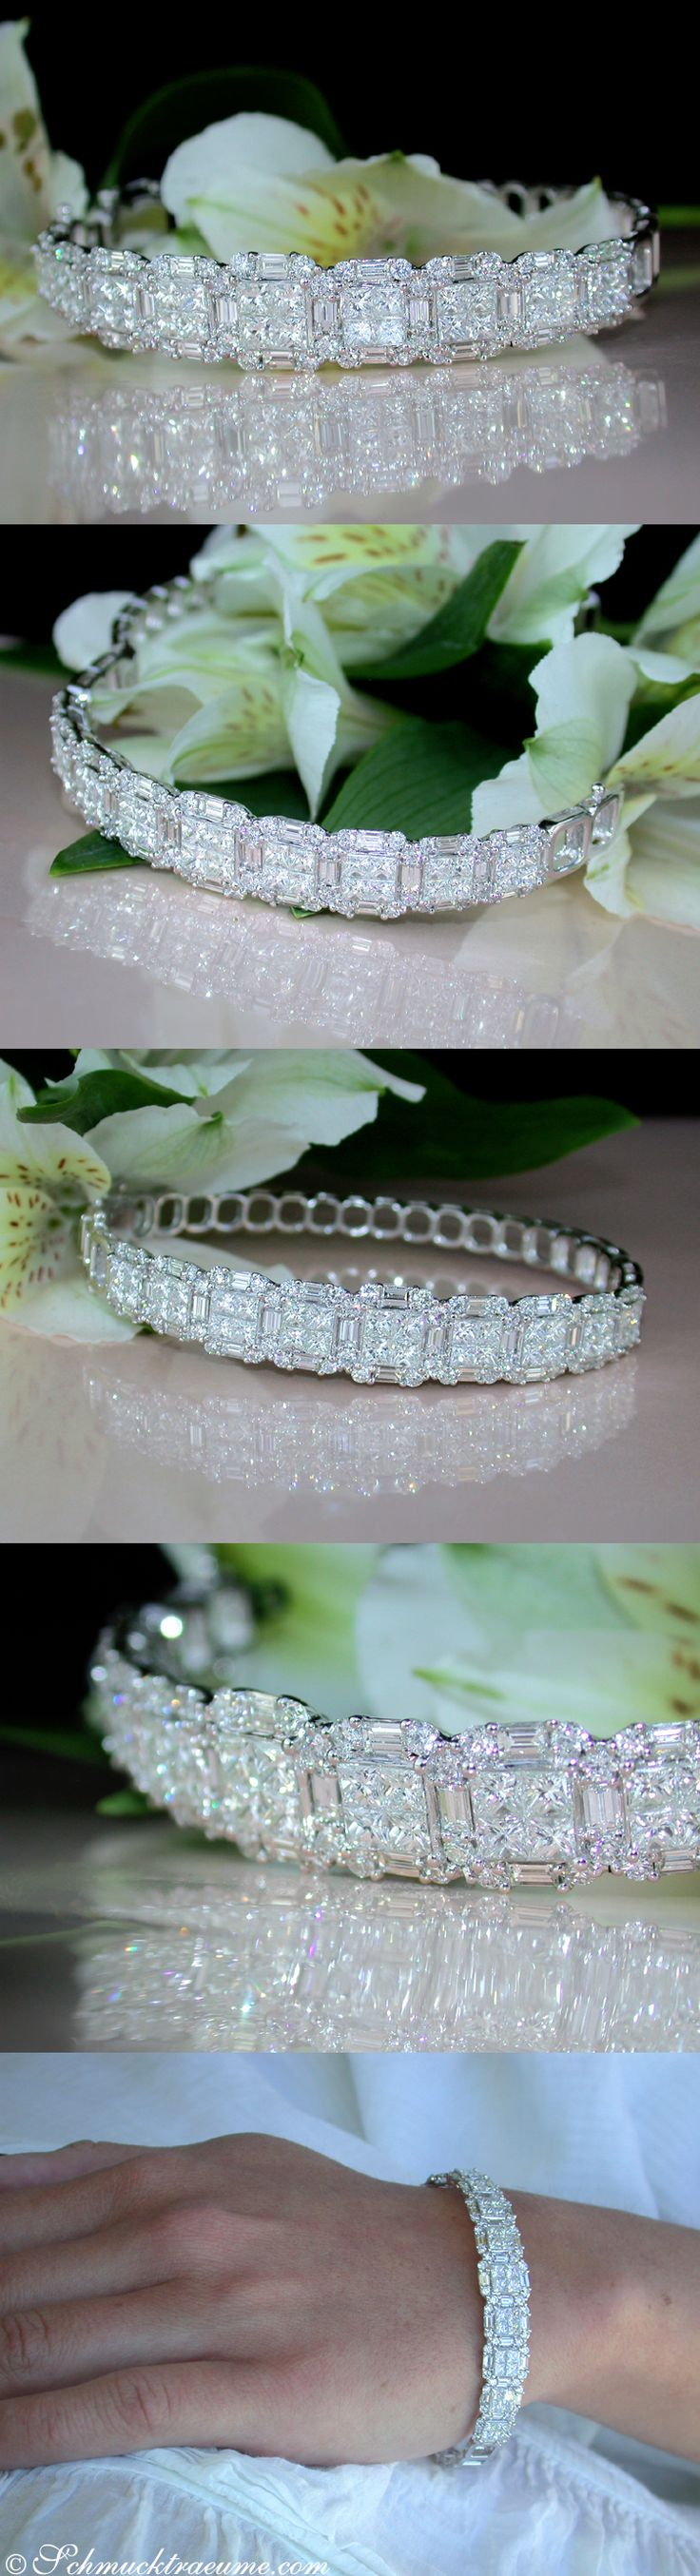 Luxury jewel: Fabulous Bangle with Brilliant, Princess & Baguette Cut Diamonds | 6.58 ct. G VVS/IF | Whitegold 18k - schmucktraeume.com Like: https://www.facebook.com/Noble-Juwelen-150871984924926/